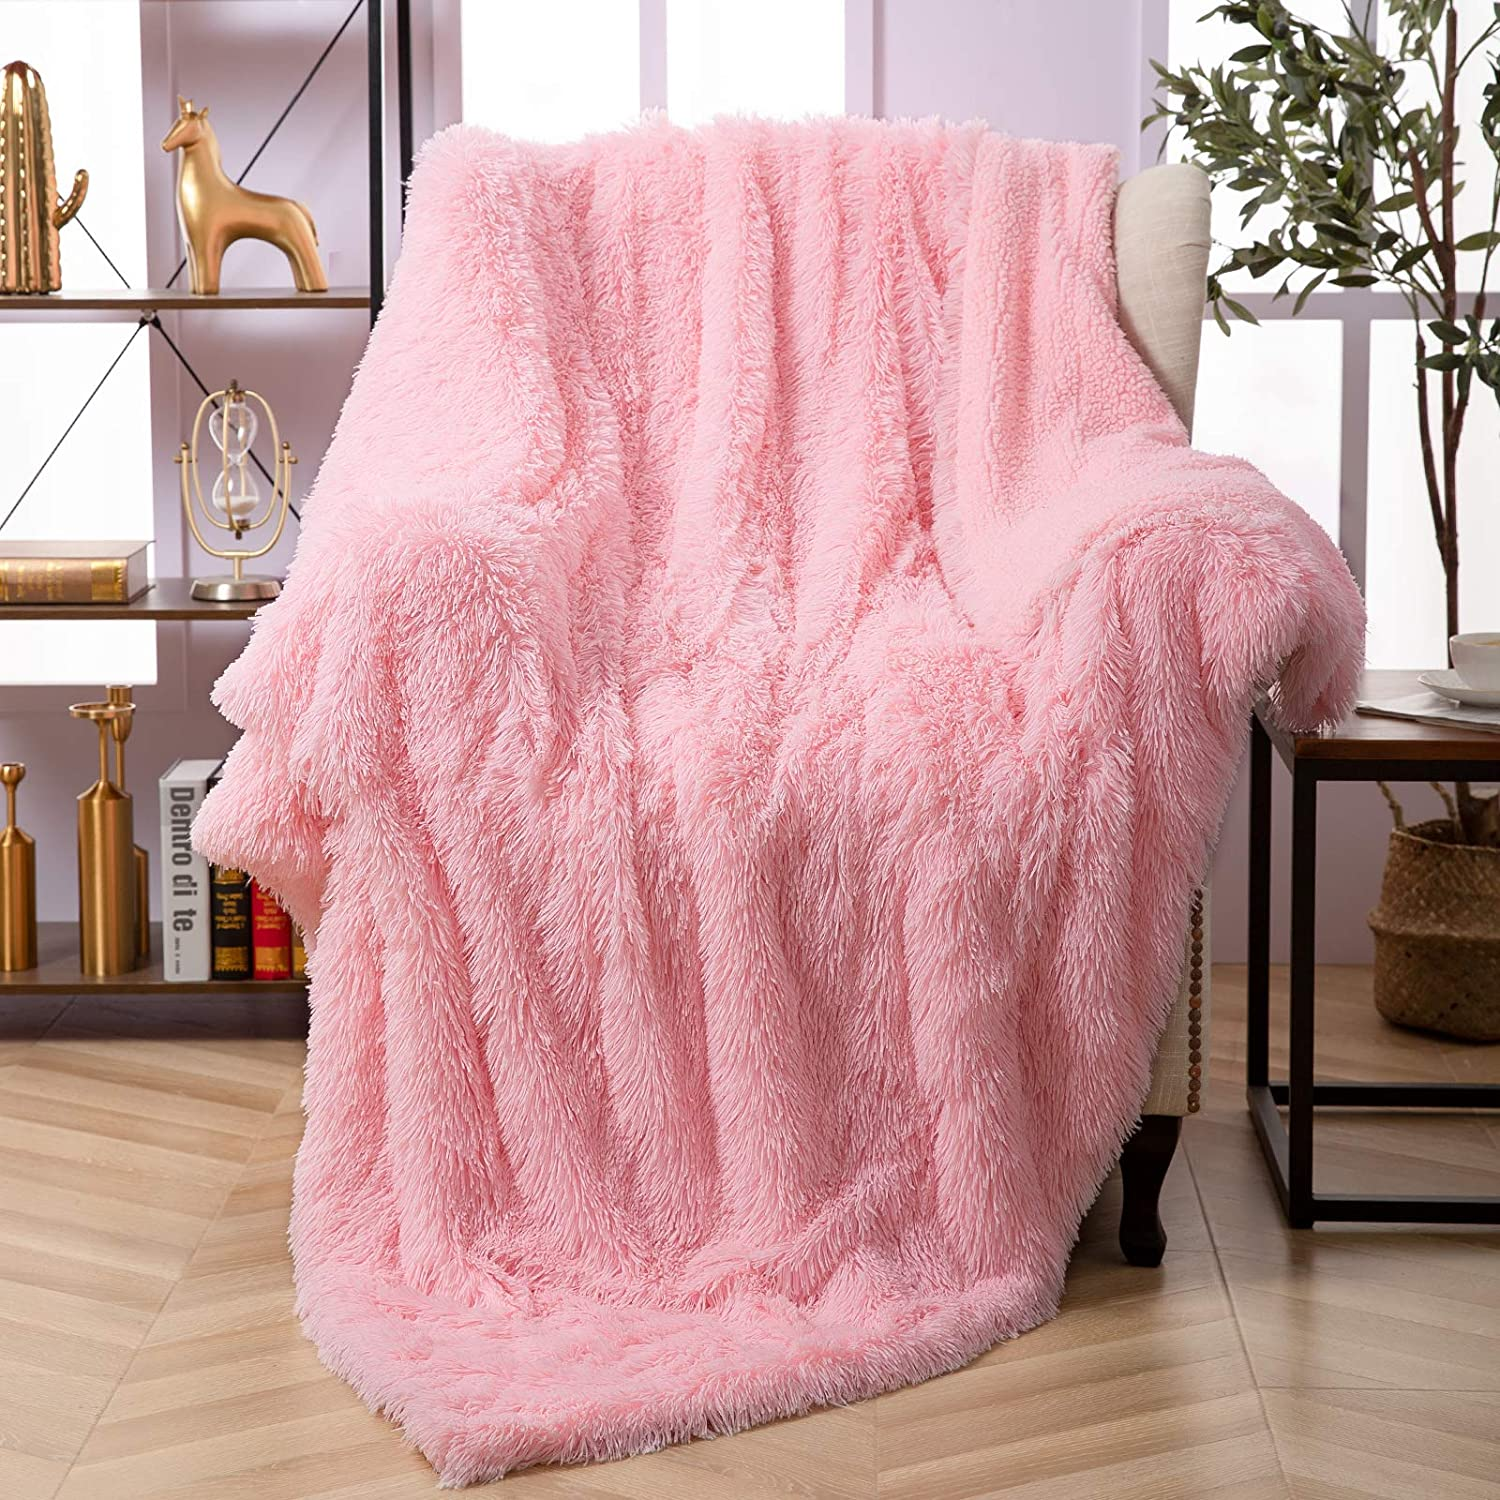 Faux Safety and trust Fur Throw Blanket Super Soft Fuzzy Blan Shaggy Super sale period limited Lightweight